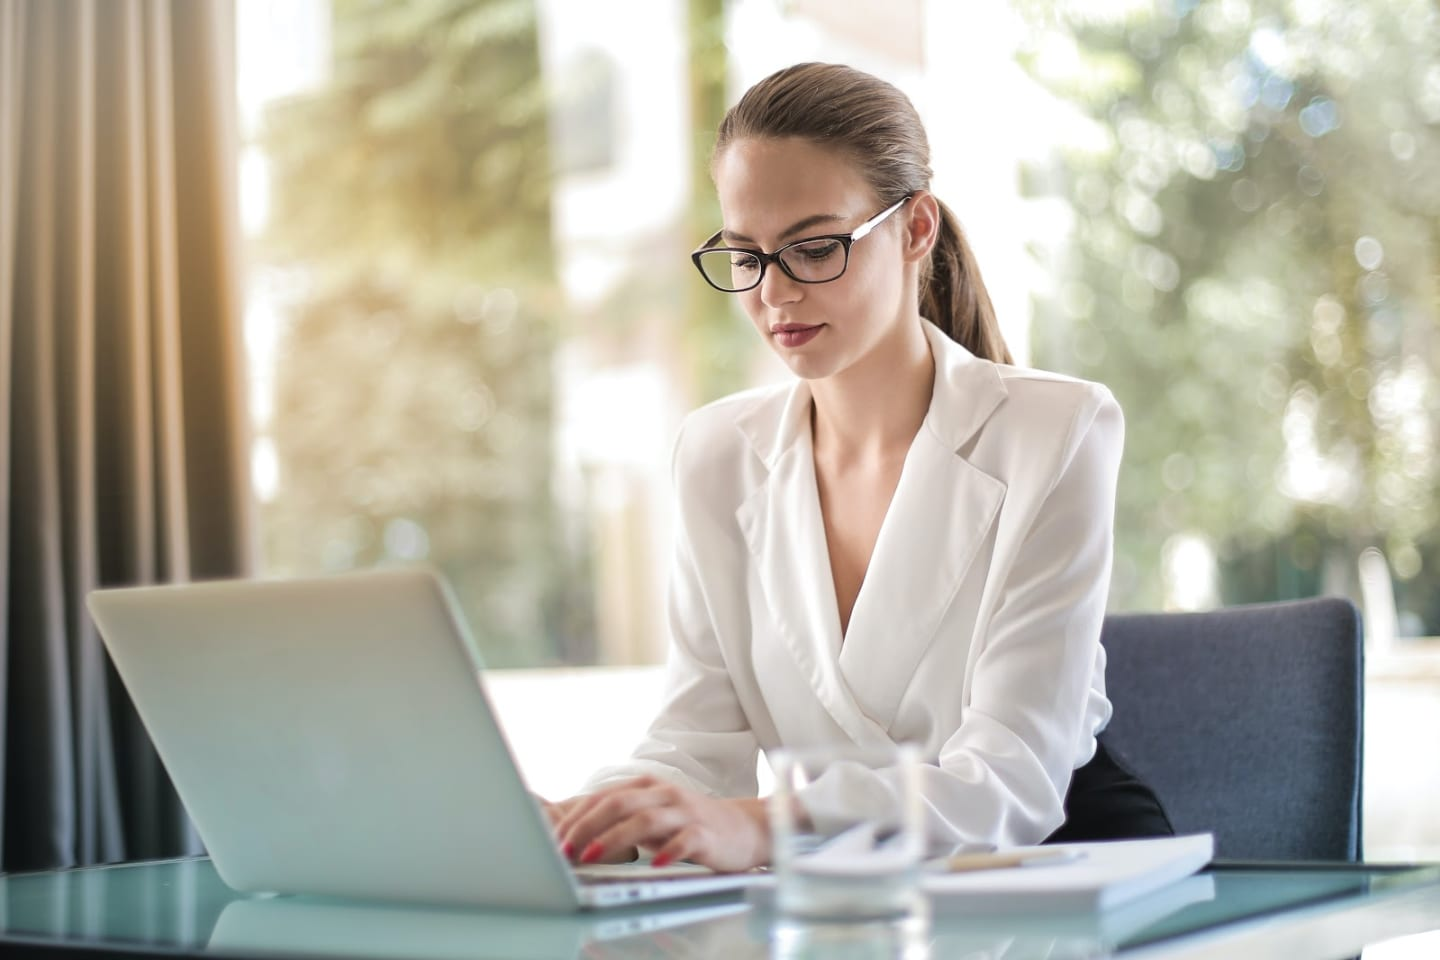 A professionally dressed woman works at her laptop.